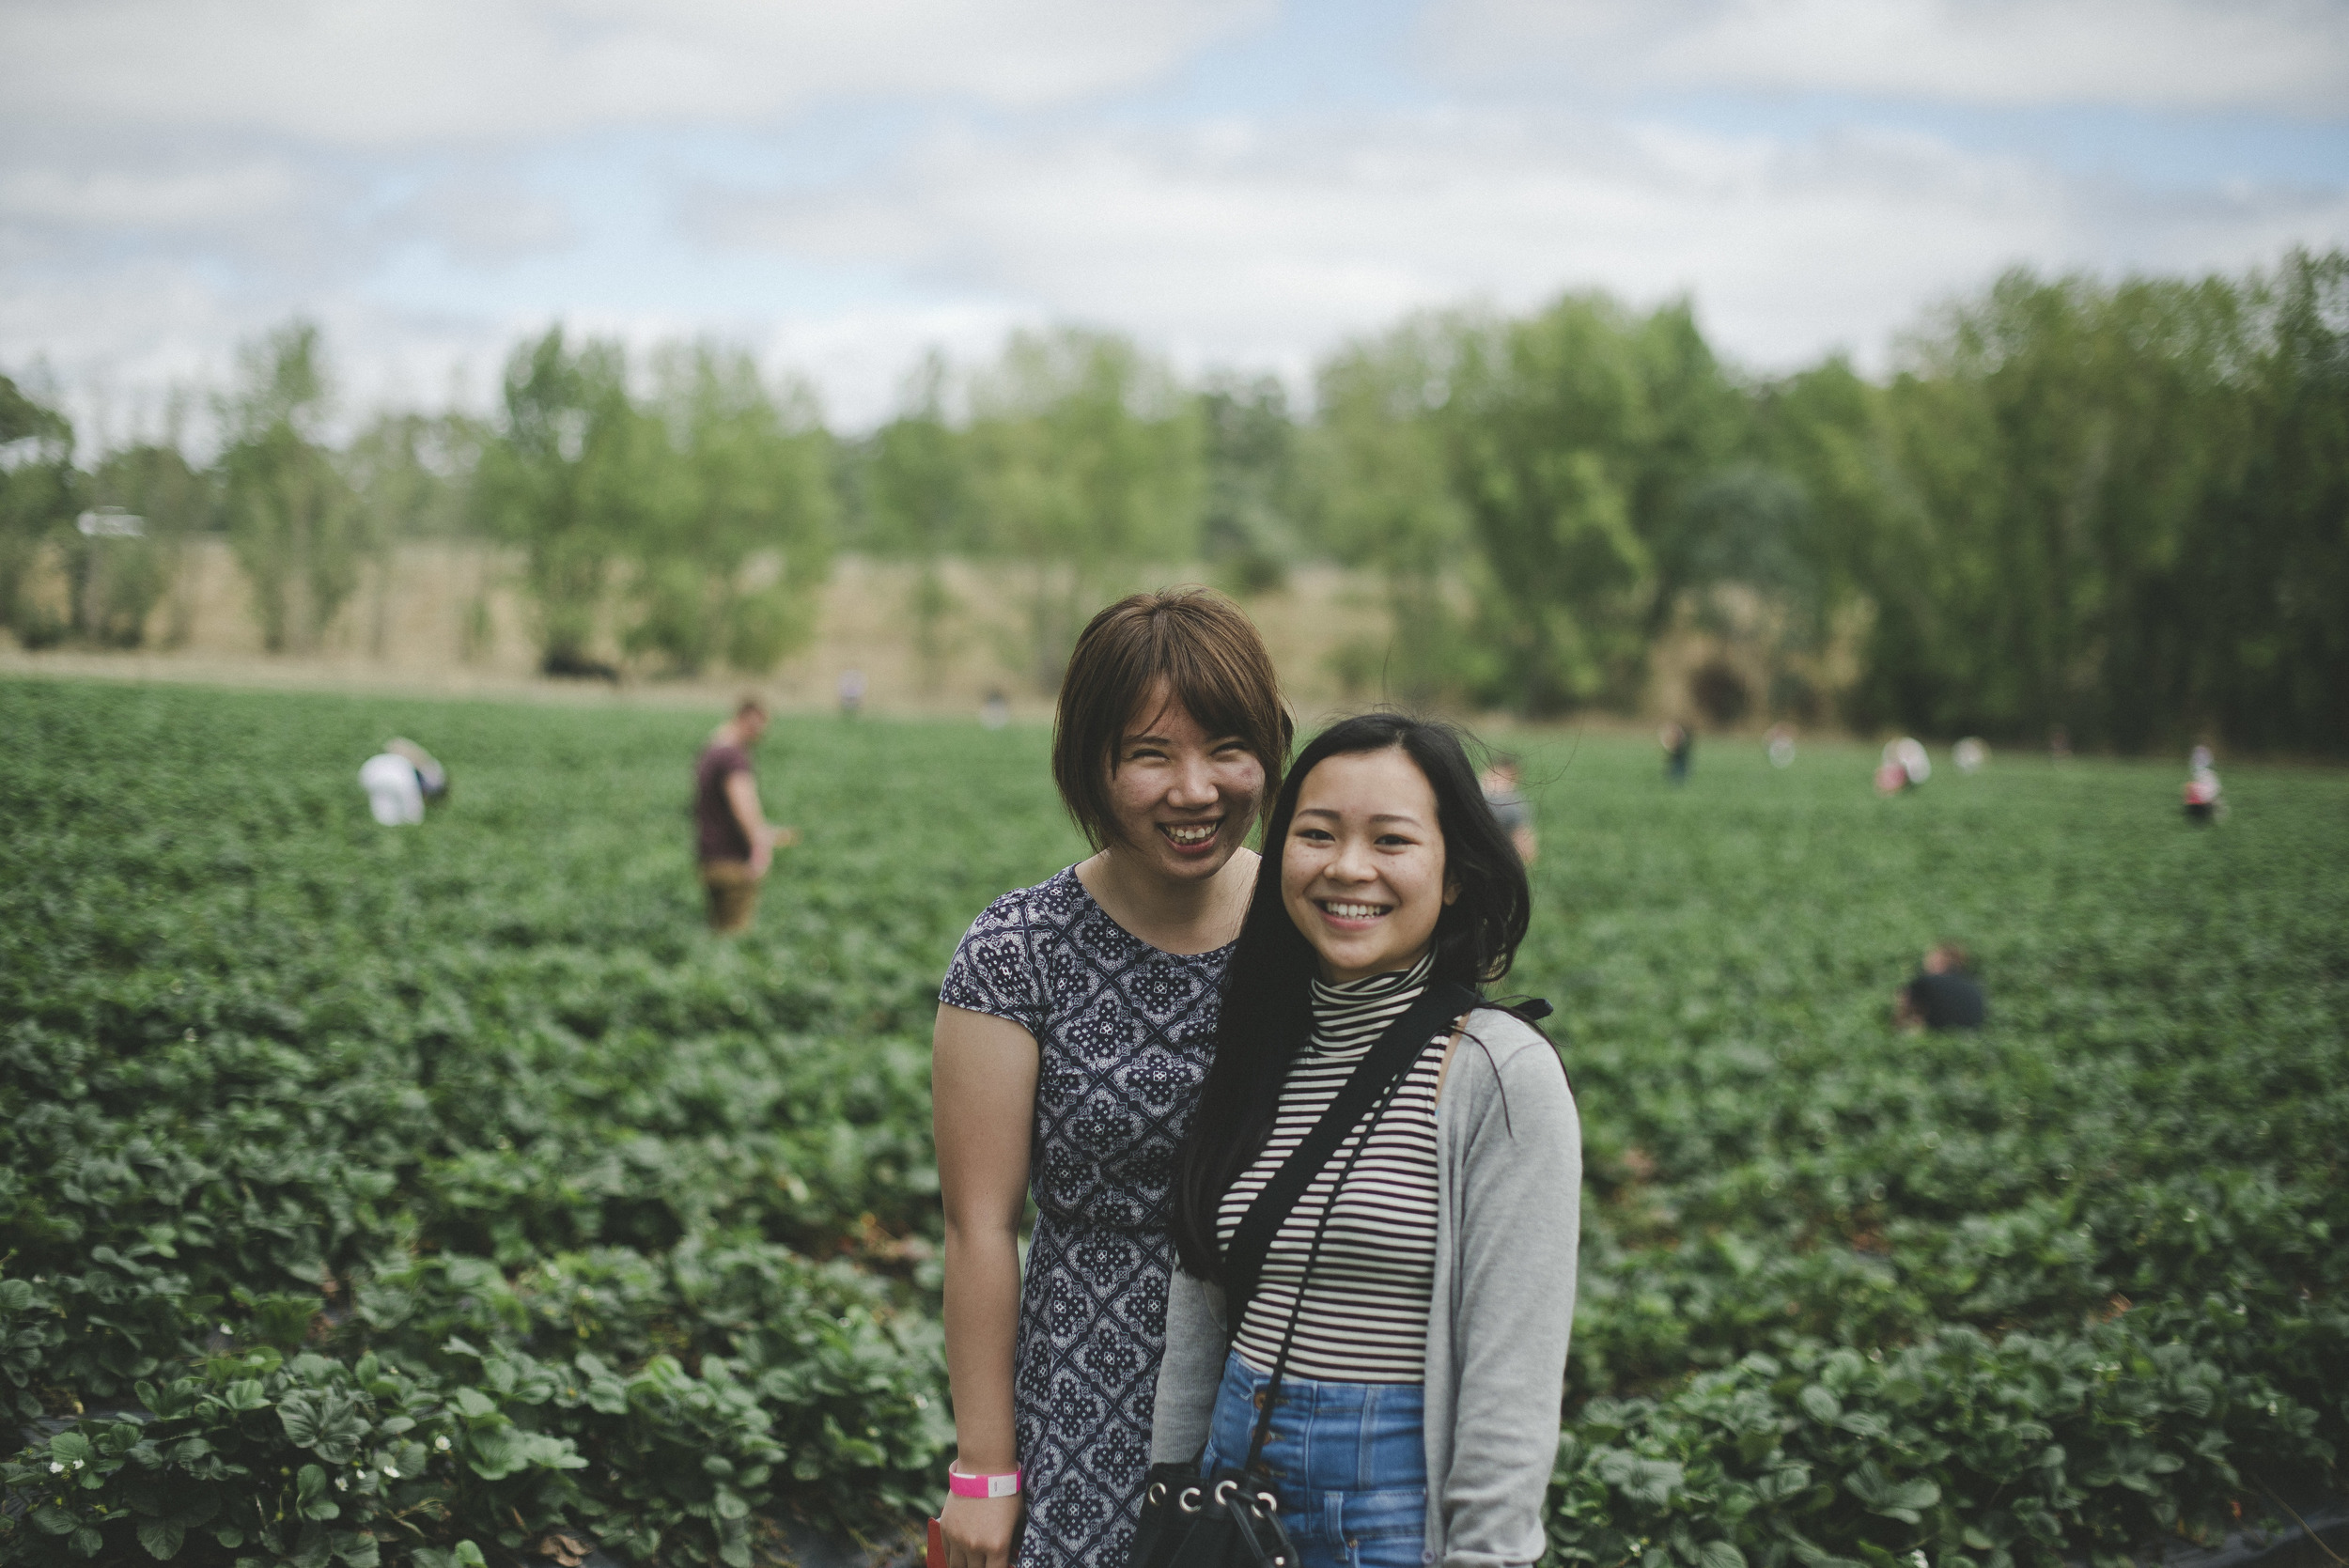 Ava came to visit from Perth  and we went to pick strawberries, tasted food at Hahndorf and caught up on everything we'd missed in the past 5 years.